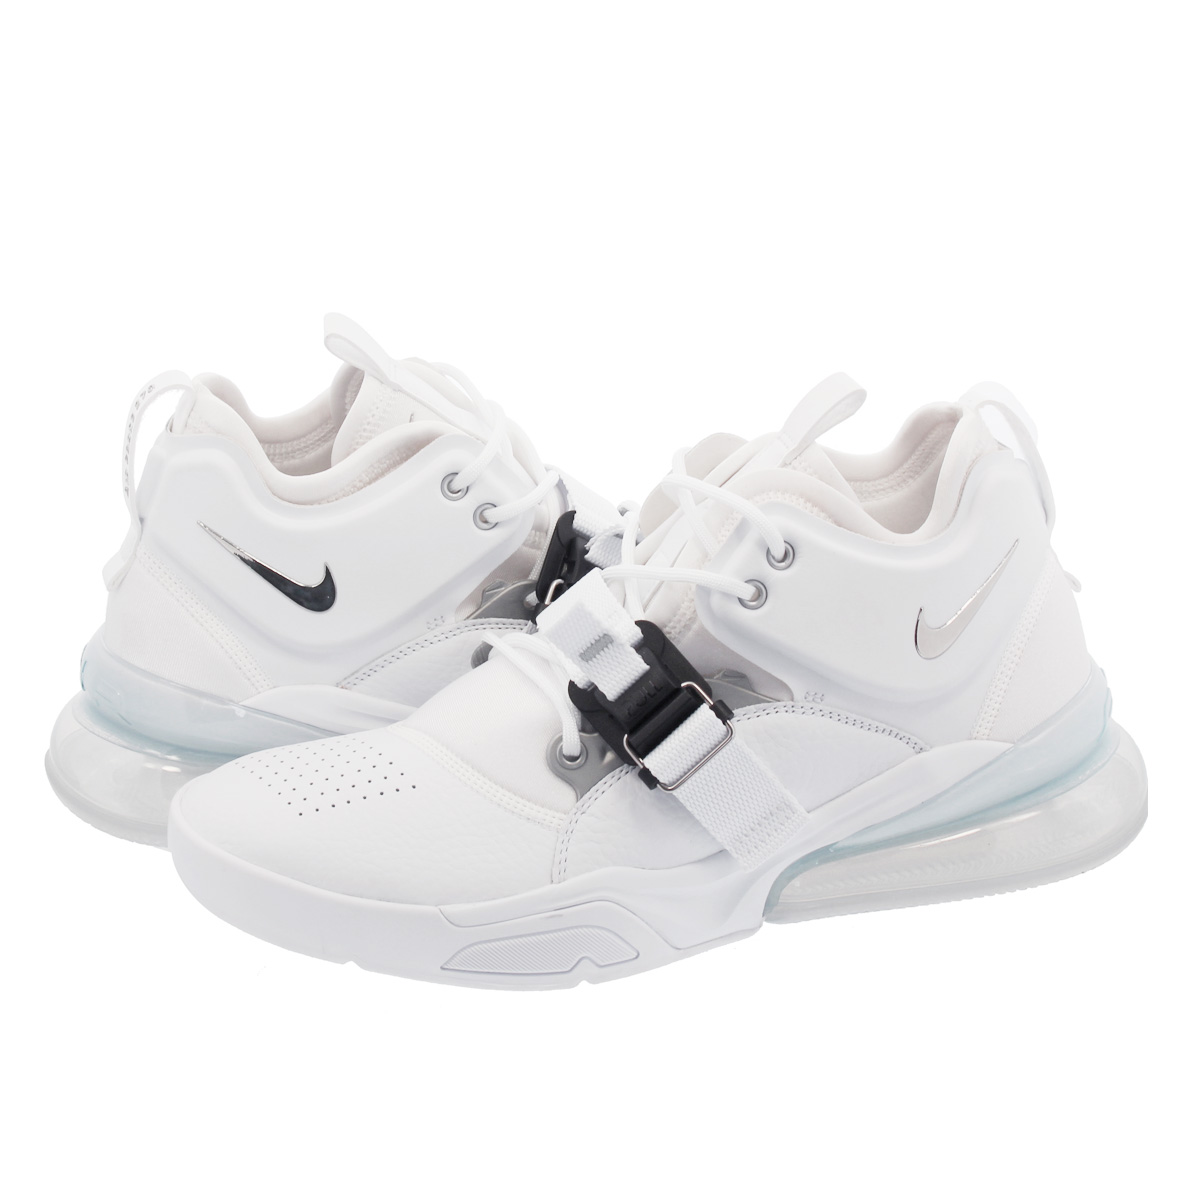 f12bebbdb79 SELECT SHOP LOWTEX  NIKE AIR FORCE 270 Nike air force 270 WHITE METALLIC  SILVER ah6772-100